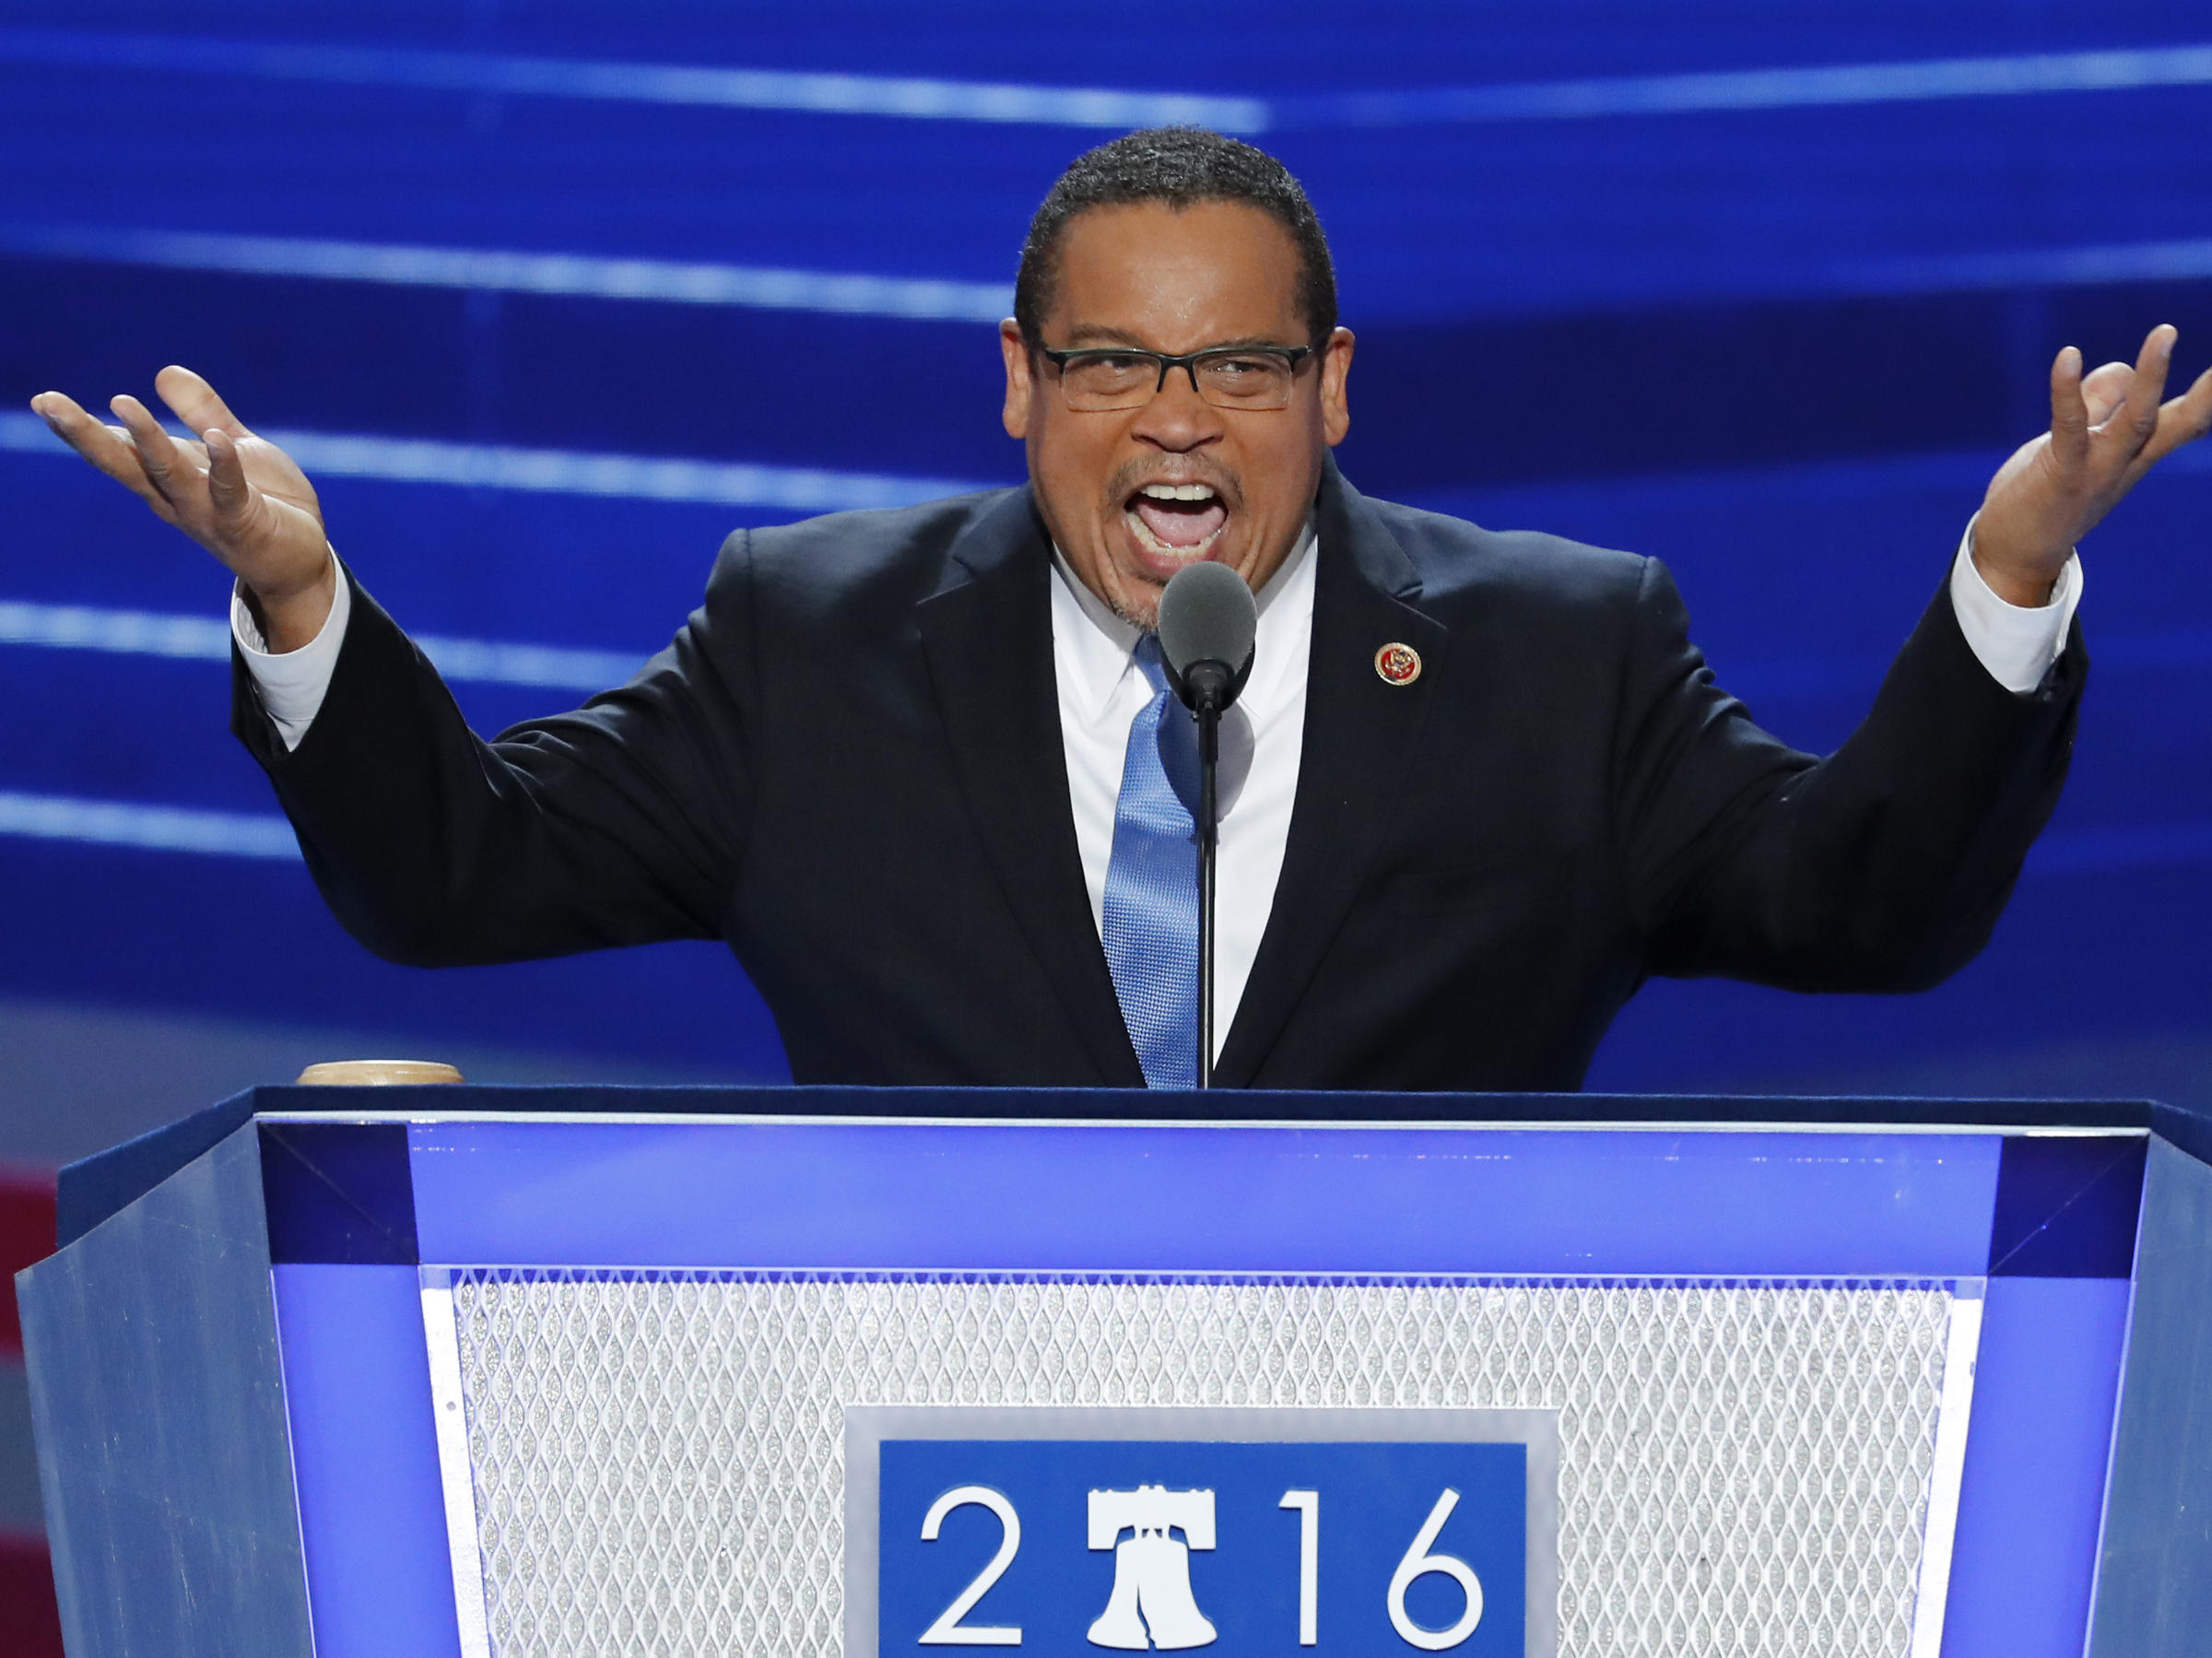 DNC Chair Candidate Proposed Making a Separate Country for Black Americans